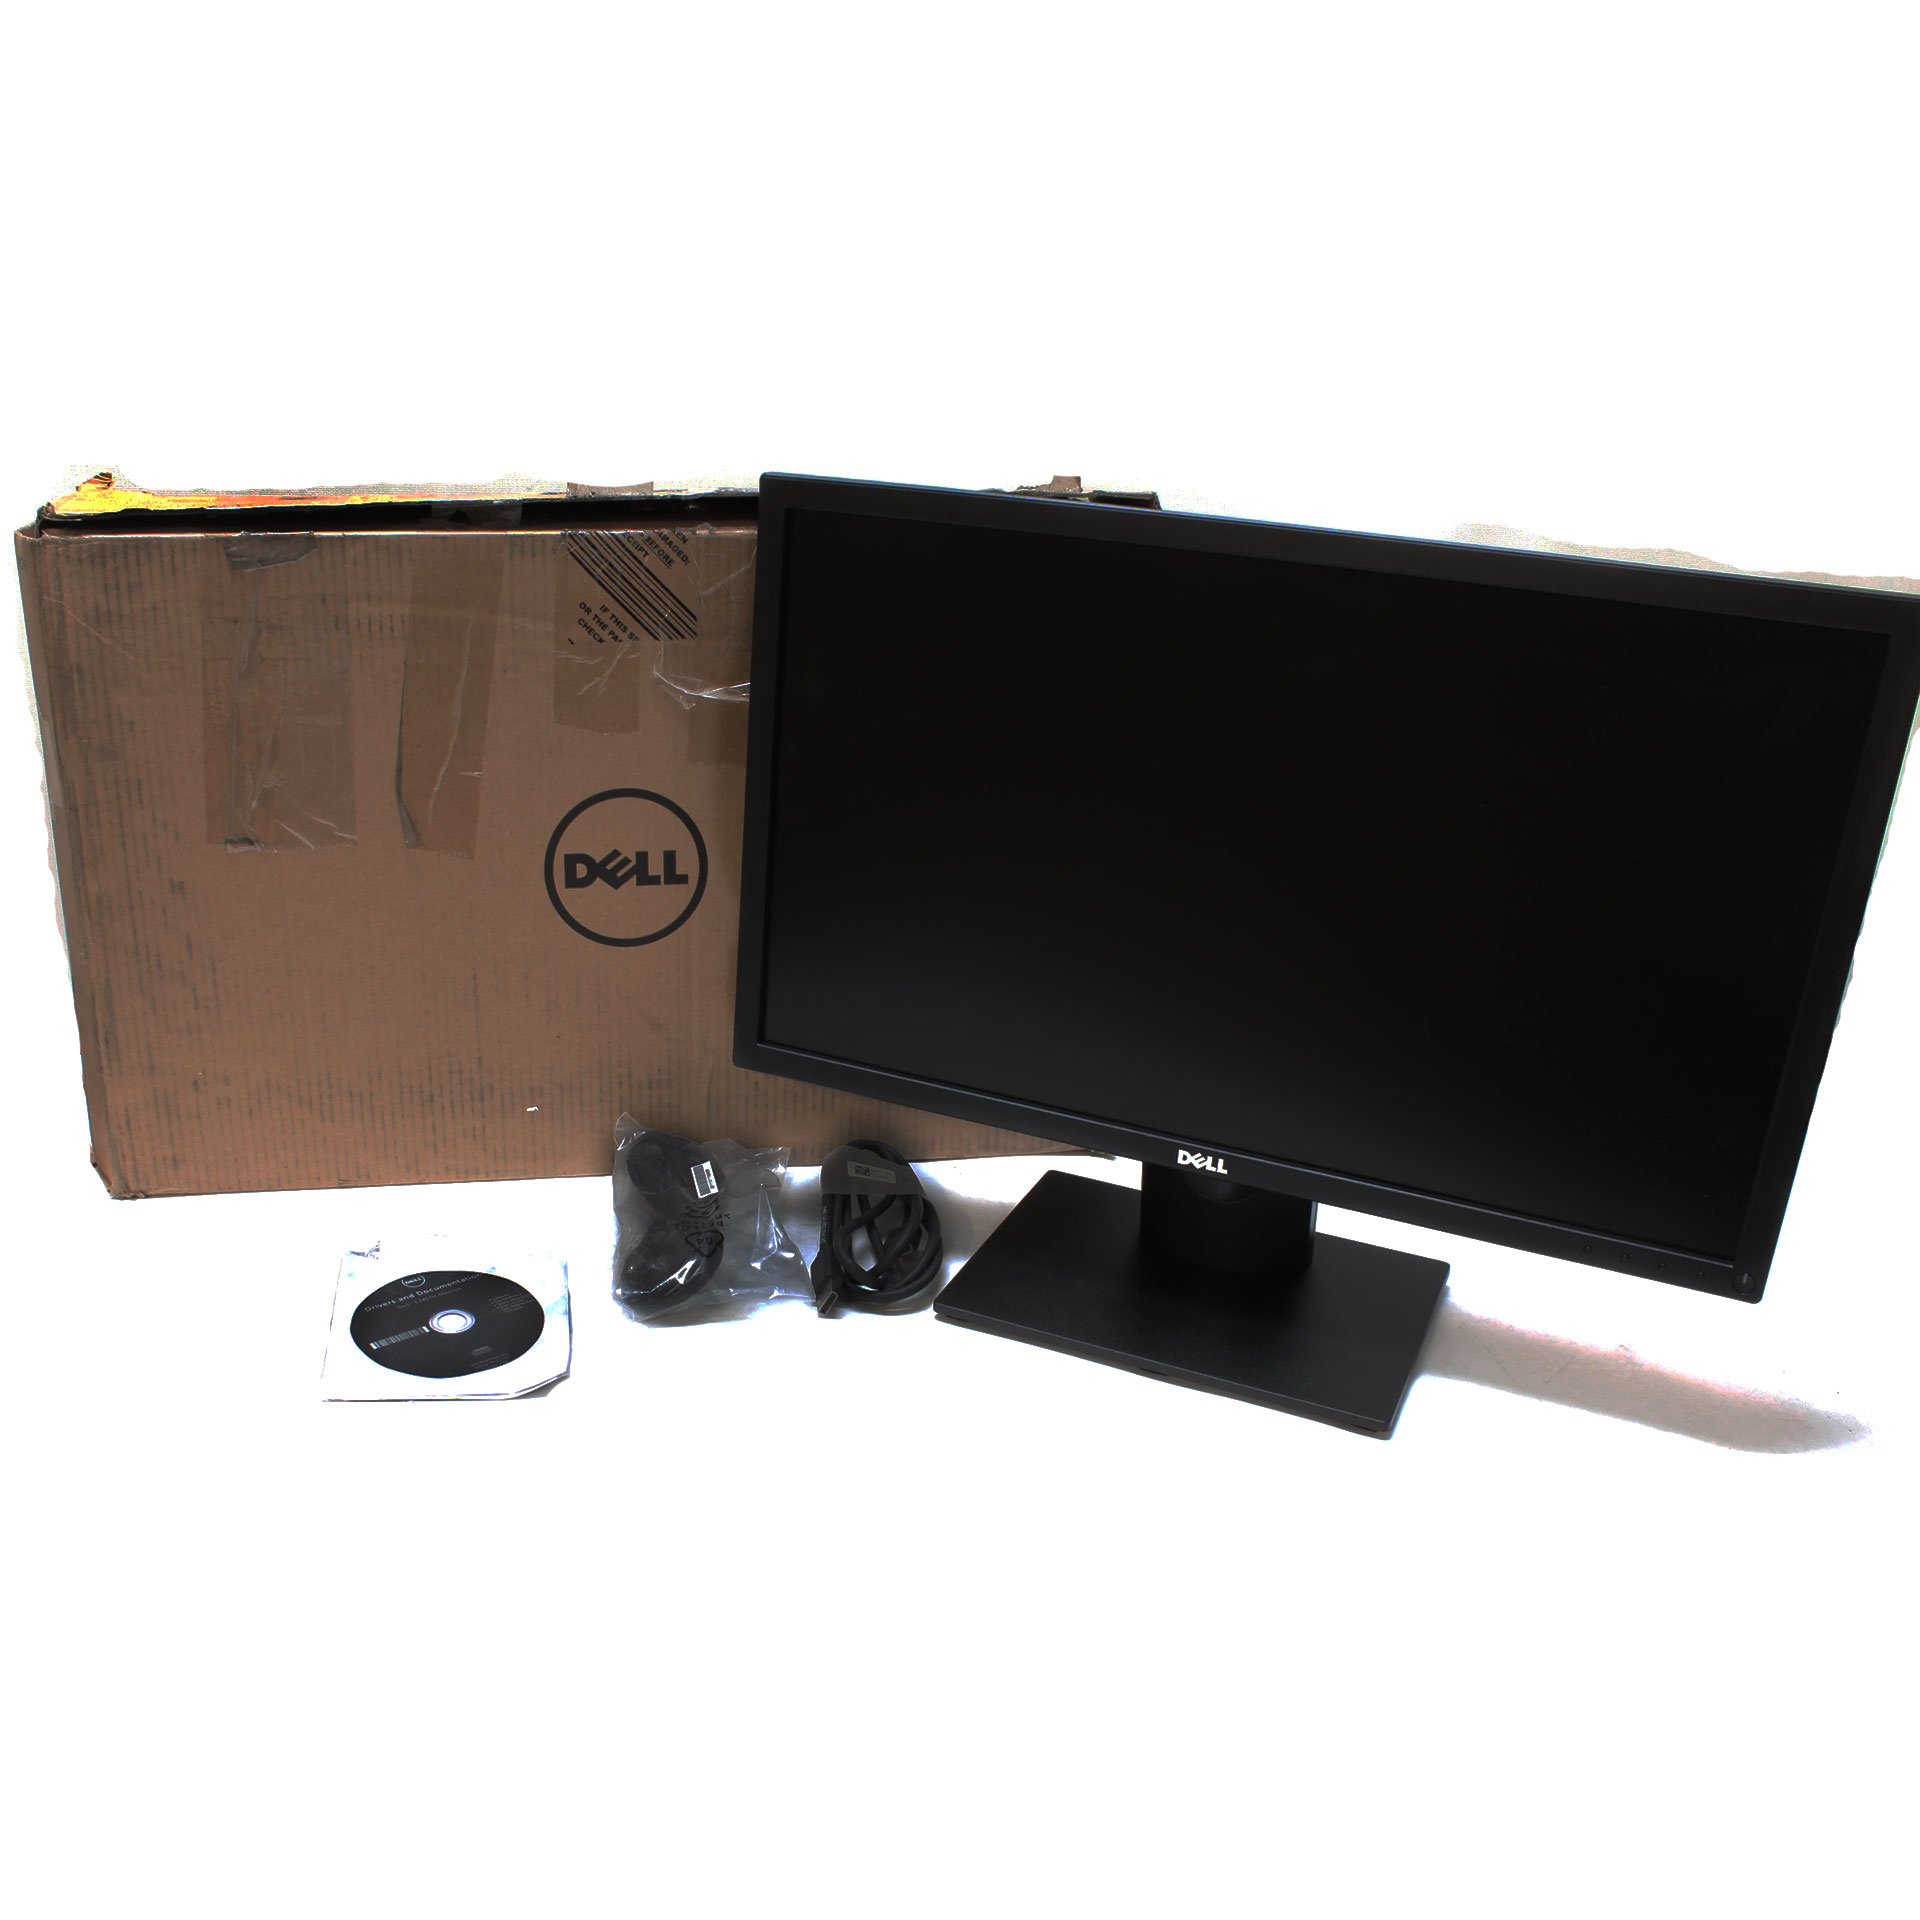 "Dell 24"" LED LCD Monitor 1980x1080 76Hz 8ms E2417H Black"